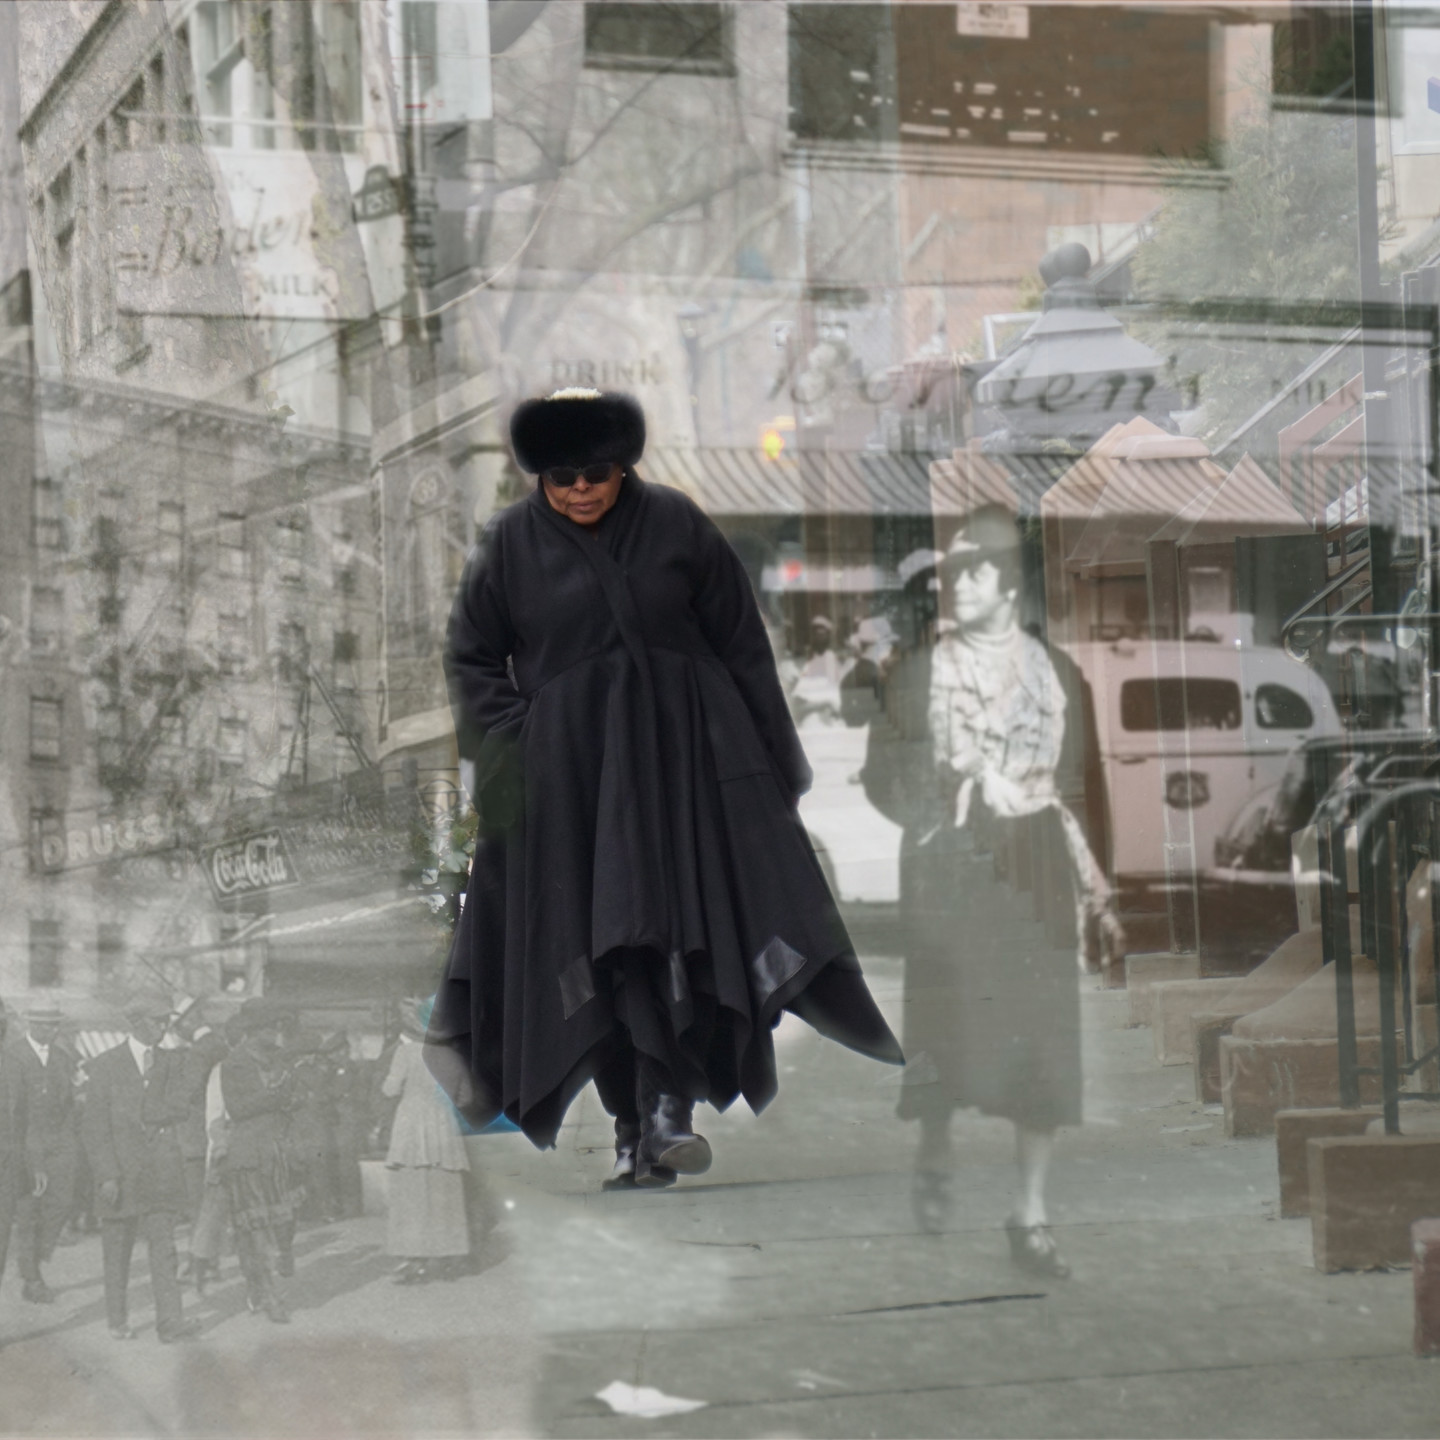 A photo montage shows a present-day individual with dark skin and clothing walking and is overlayed on a historical black-and-white photograph of a city neighborhood. The present-day individual appears to walk next to an individual in the historical photo.